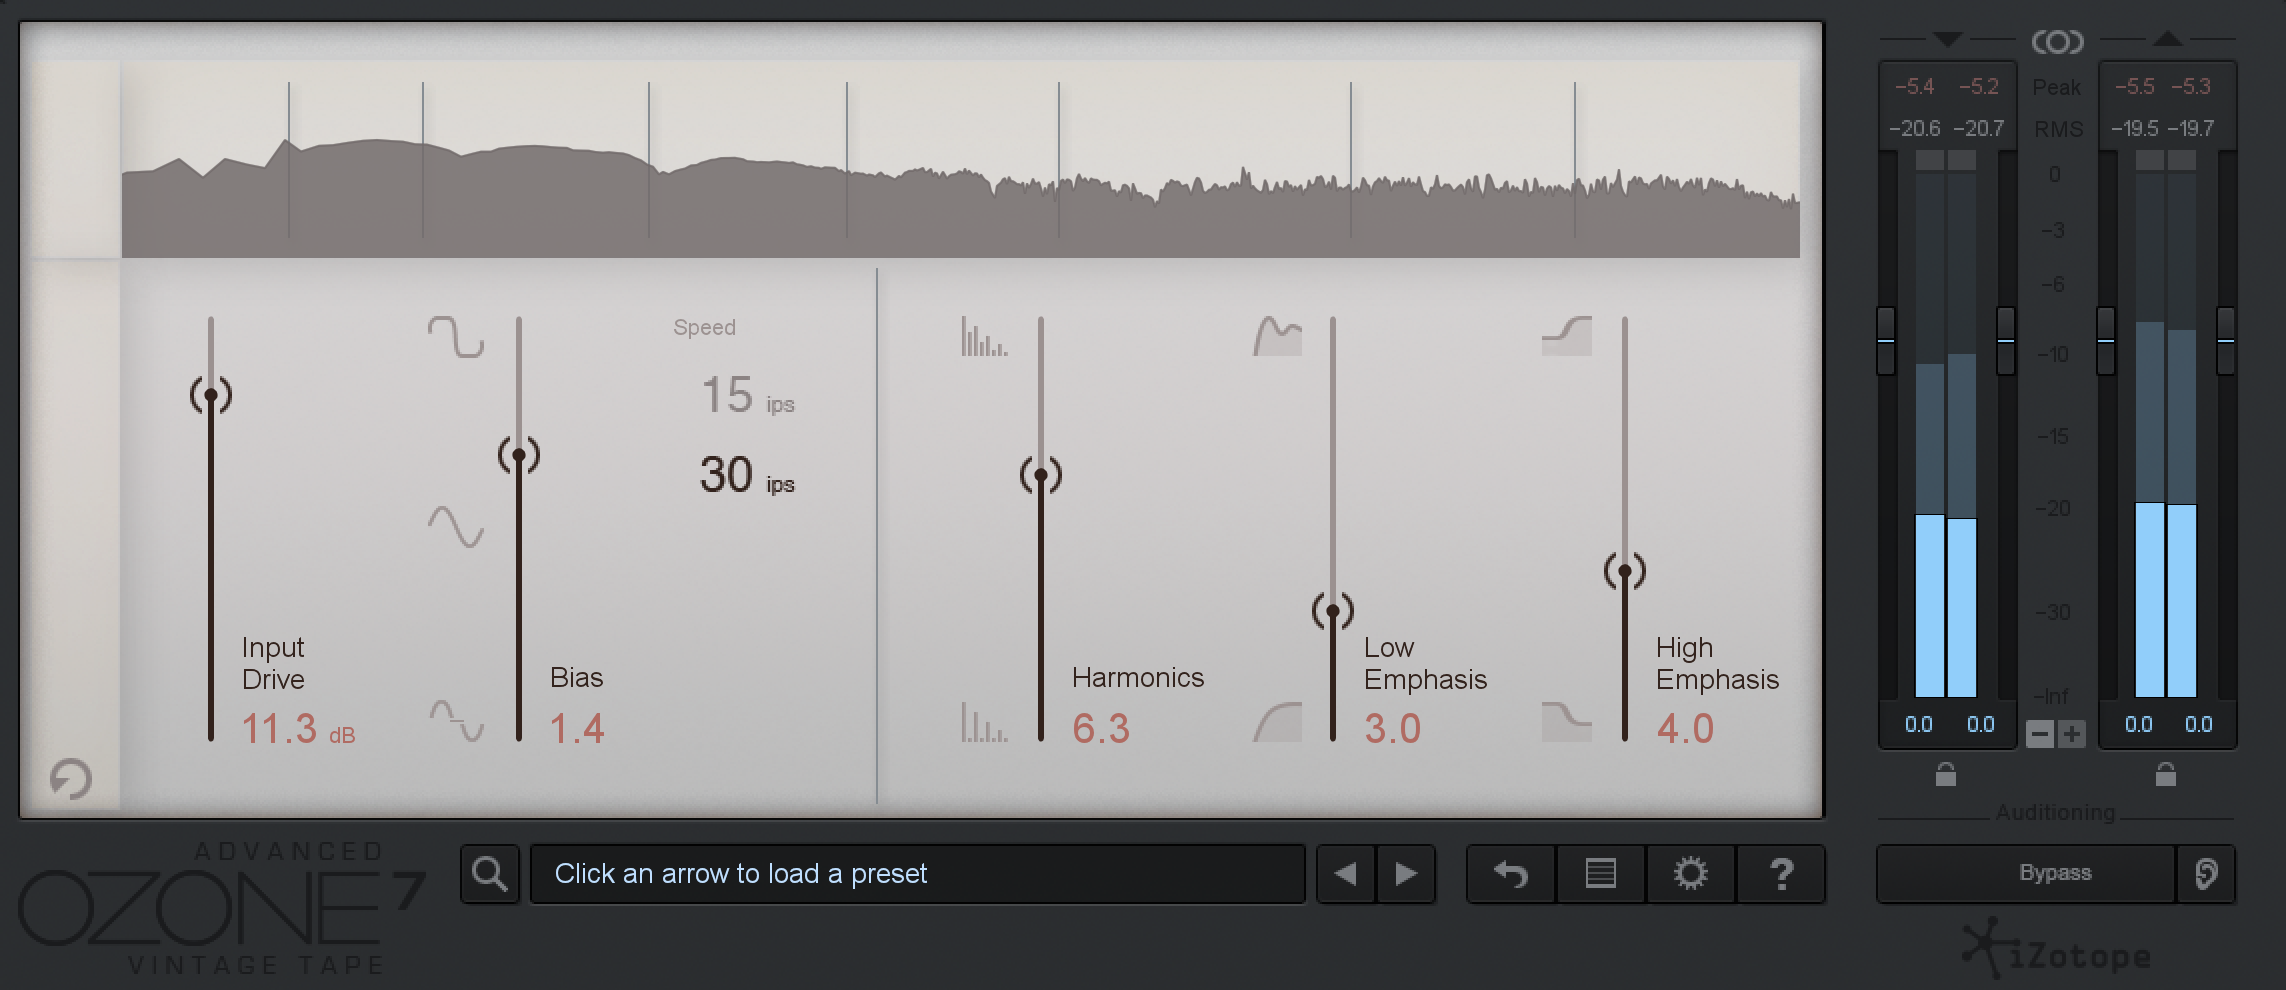 5 Ways to Use Parallel Processing in Music Production